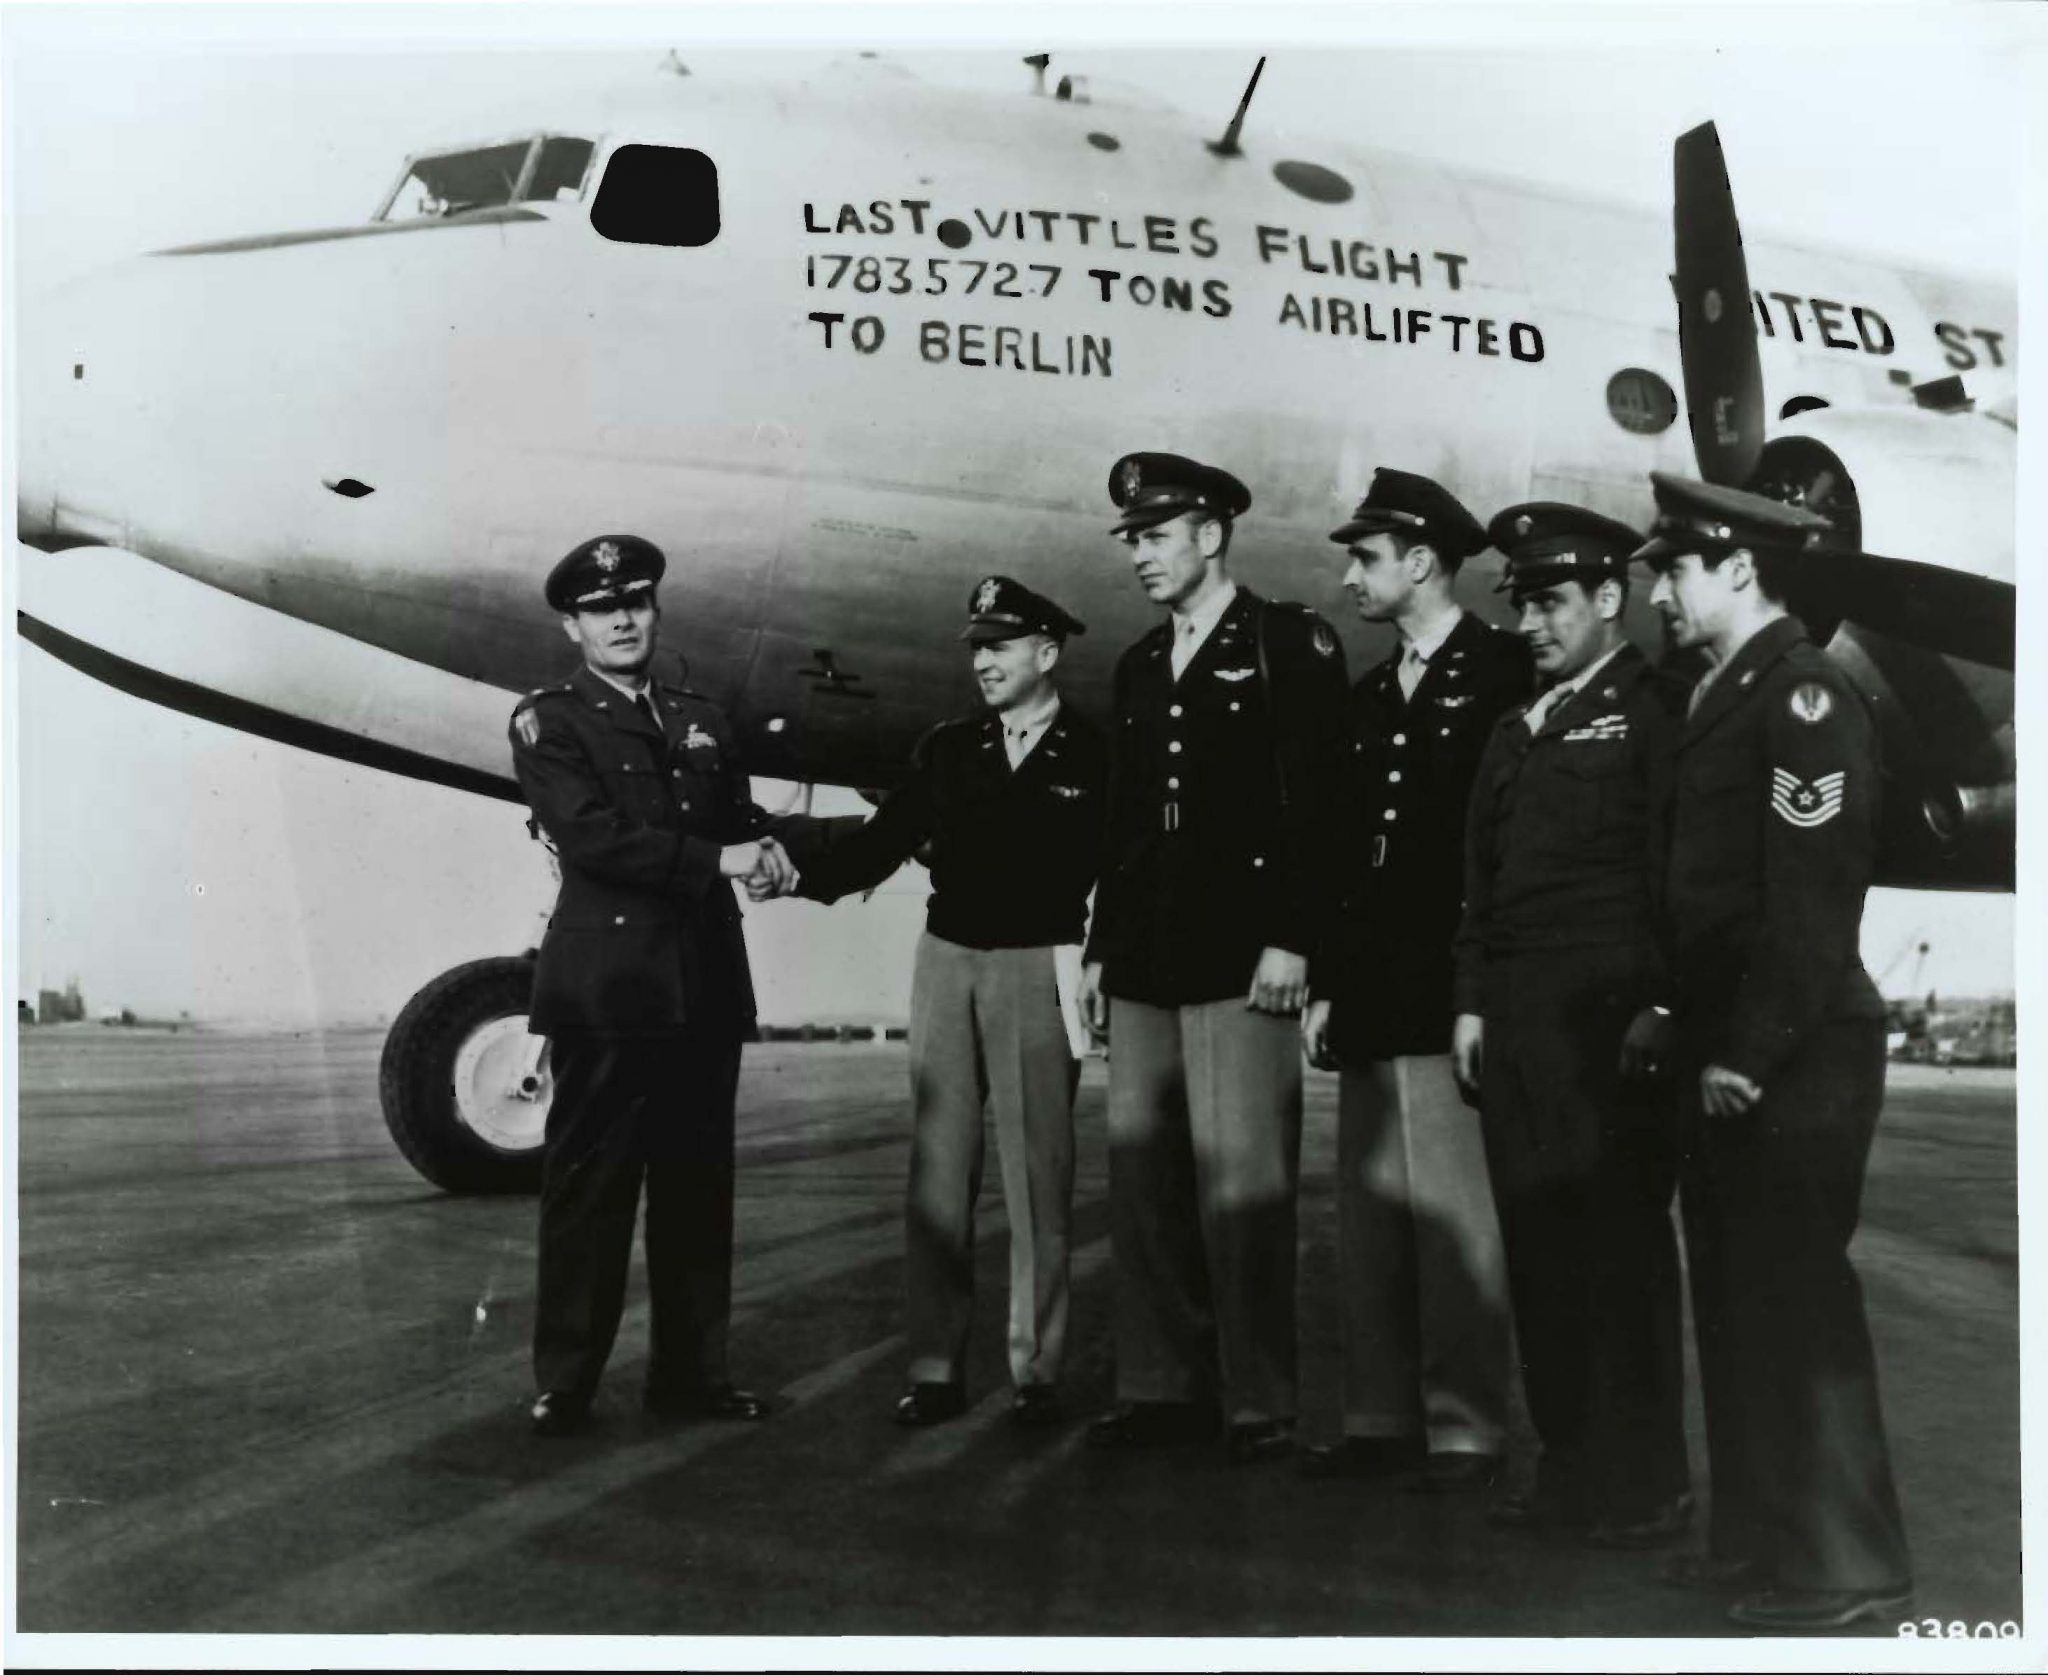 berlin airlift essay questions Essay topics recent essays contact us essay topic history, law & politics, the cold war the berlin airlift with the nazis defeated after world war ii, the western powers finally thought the string of the soviet union was a communist country with a totalitarian regime that existed.